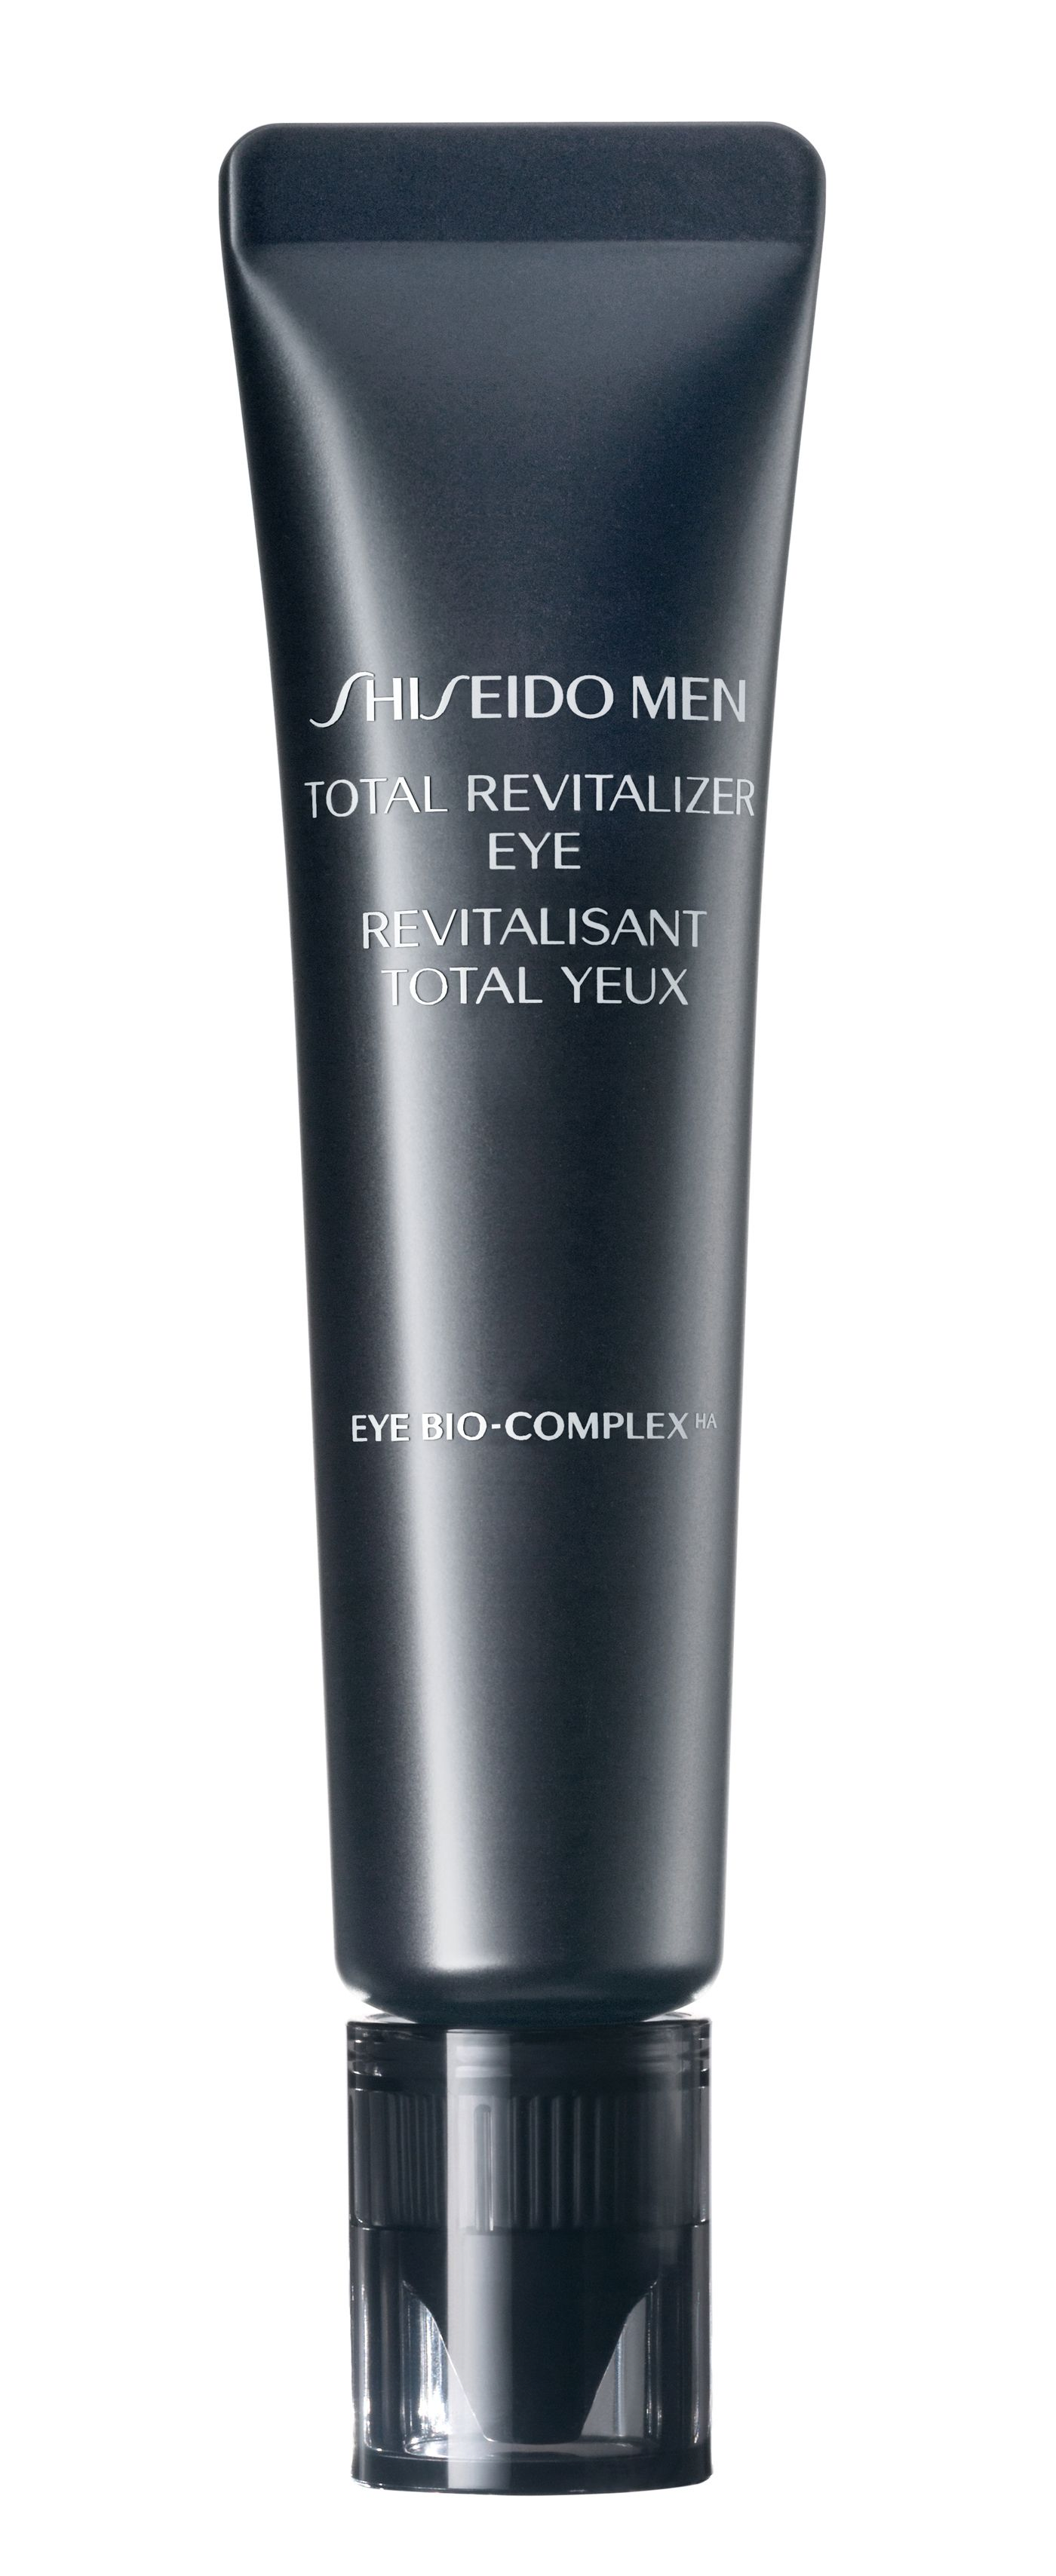 Total Revitalizer Eye